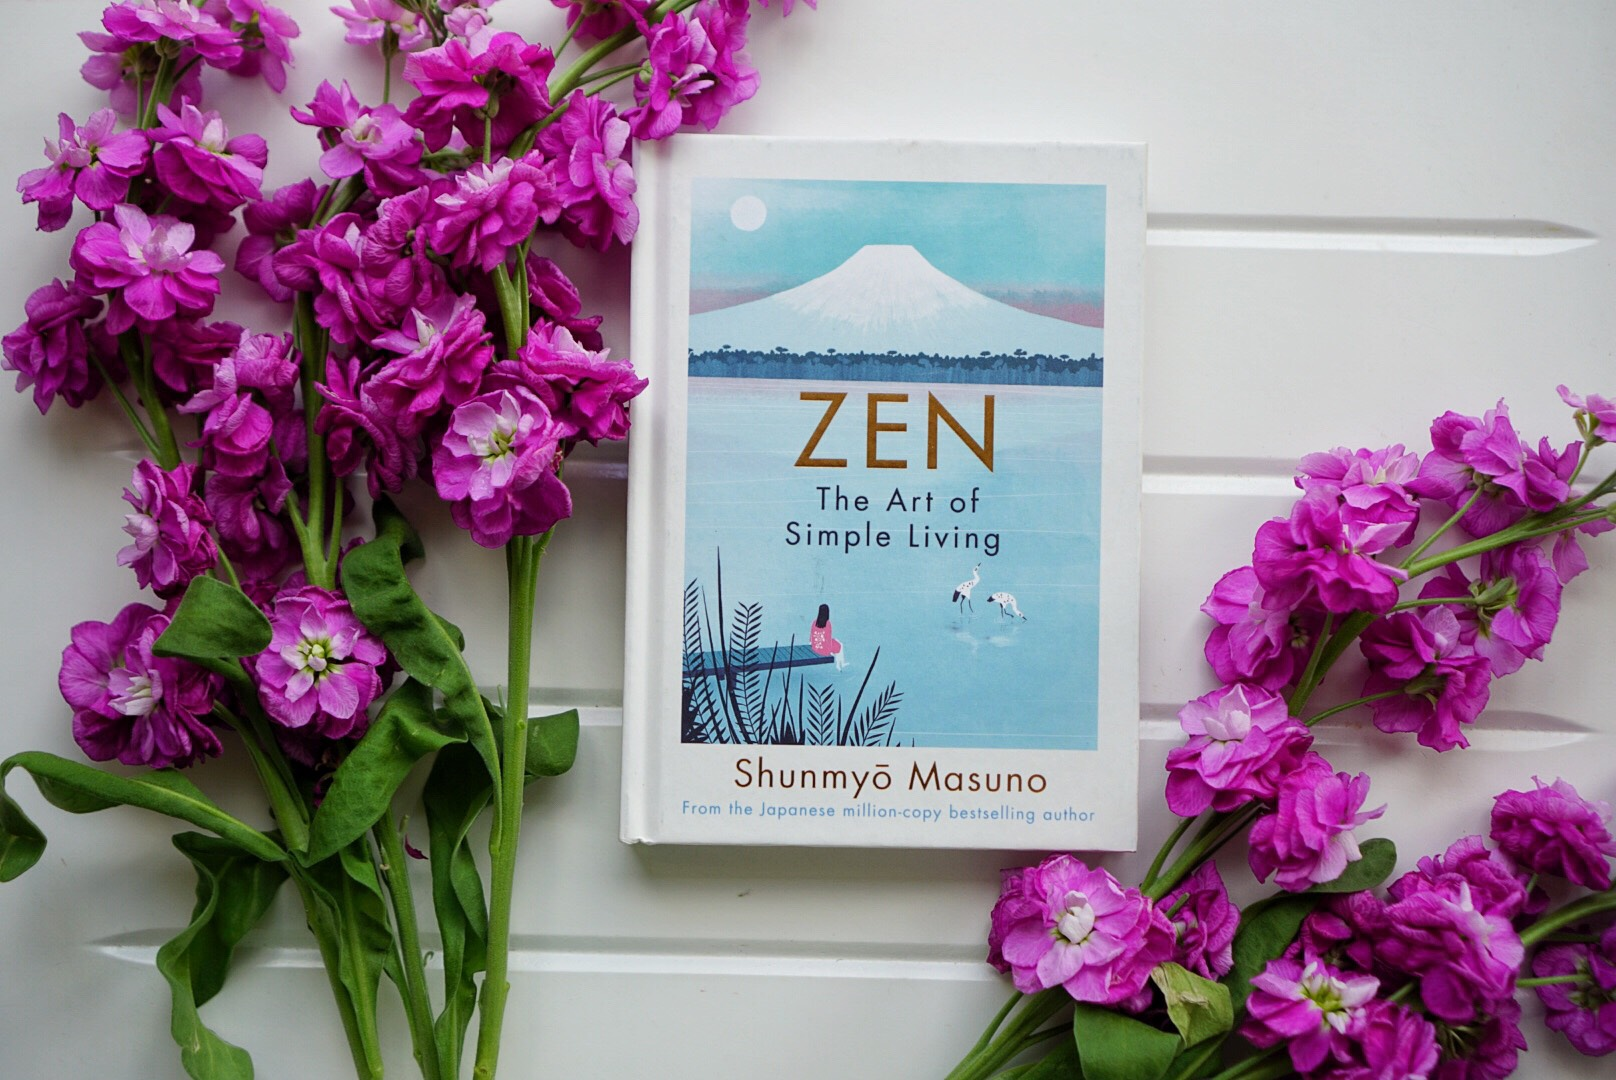 The book Zen The Art of Slow Living on a white table next to some flowers